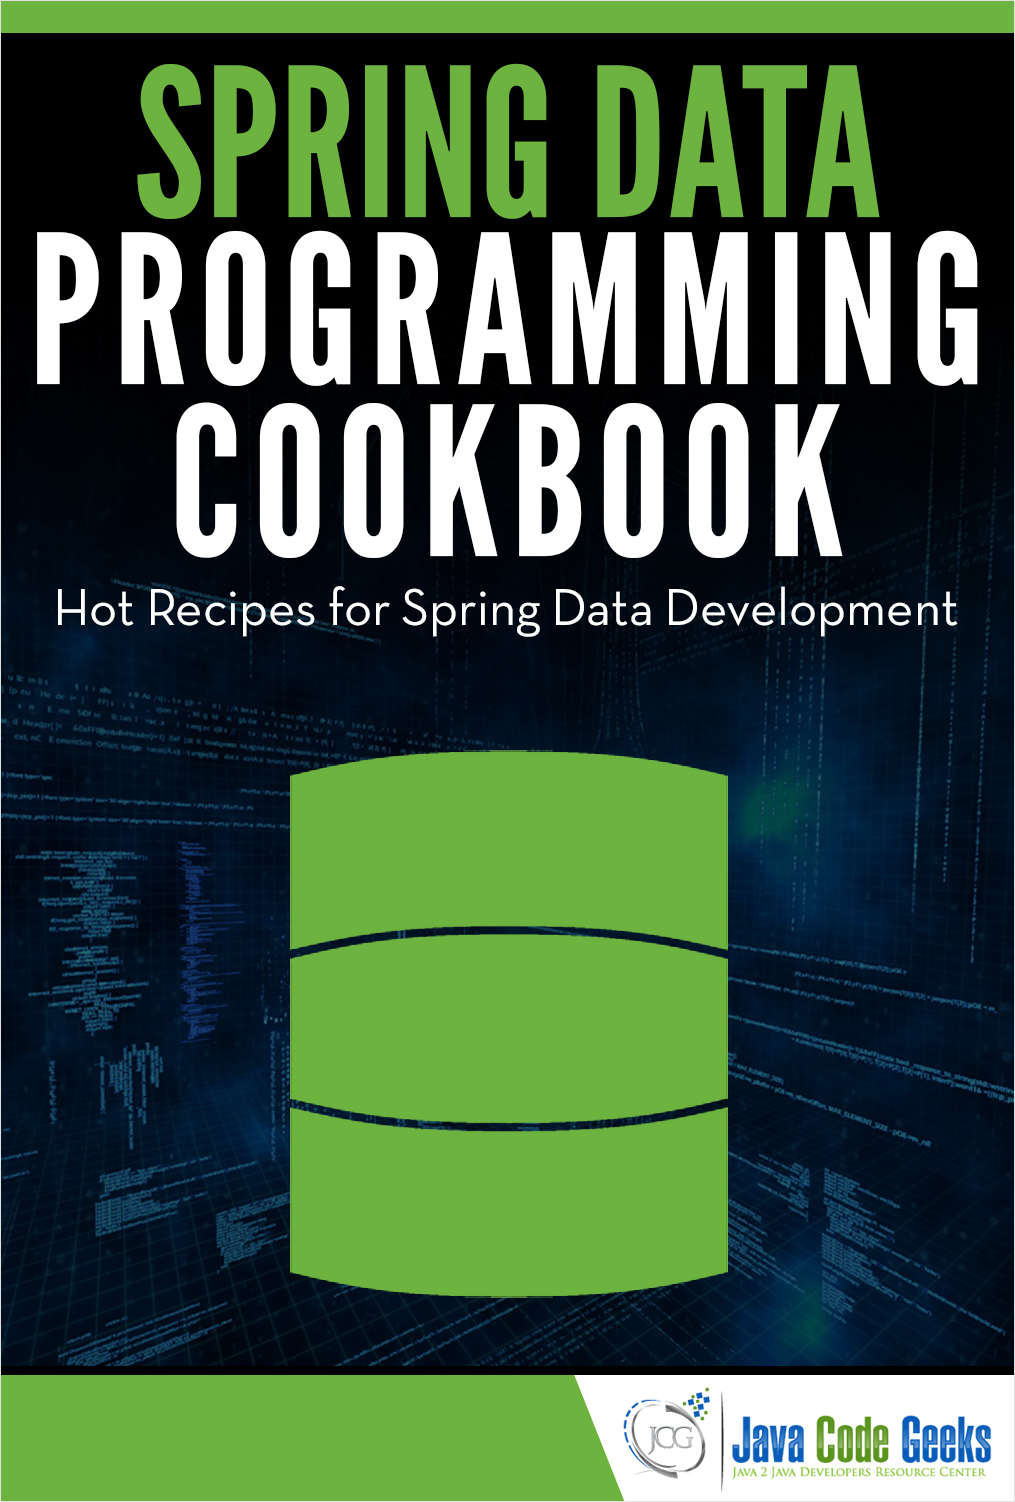 Spring Data Programming Cookbook